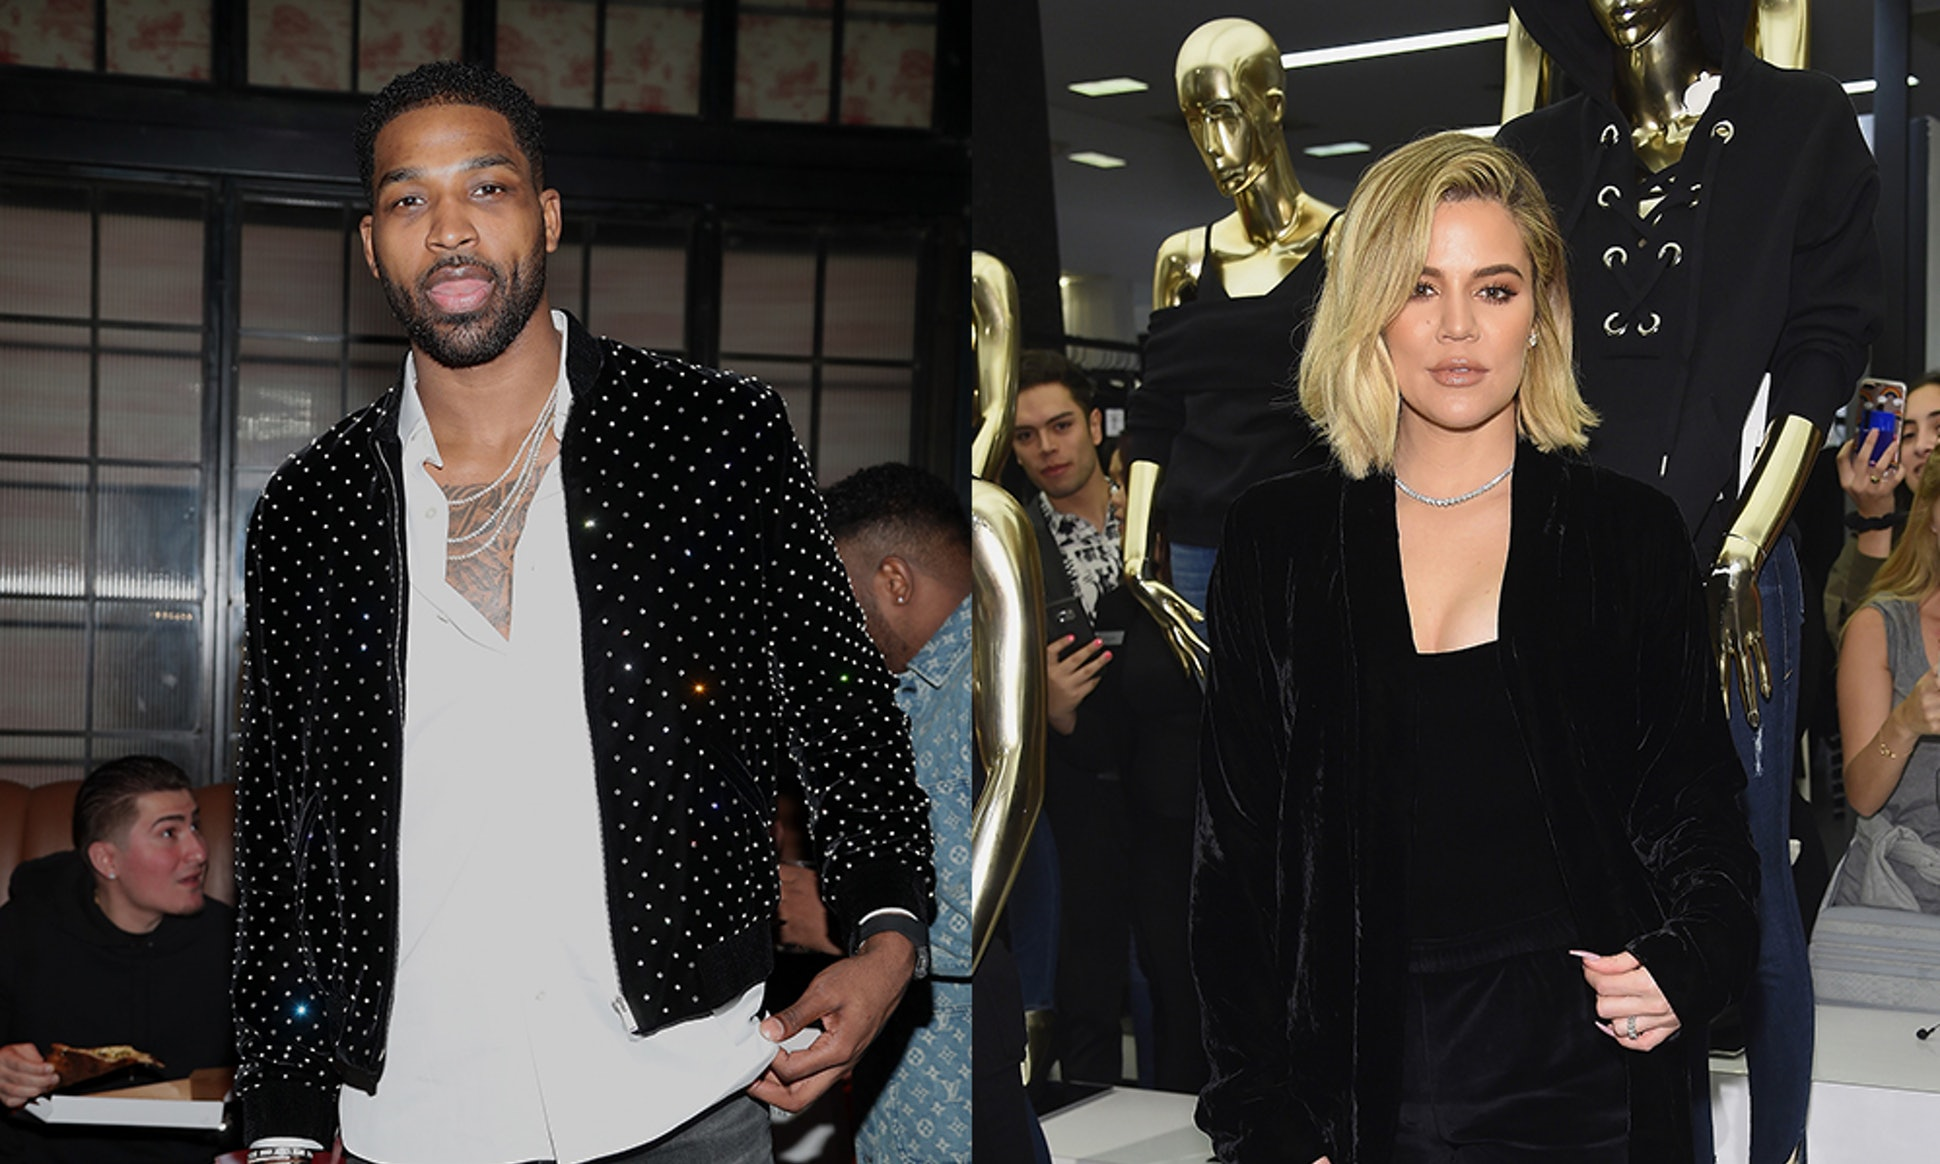 Tristan Thompson DENIES Cheating On Khloe Kardashian With Kylie Jenner's BFF!